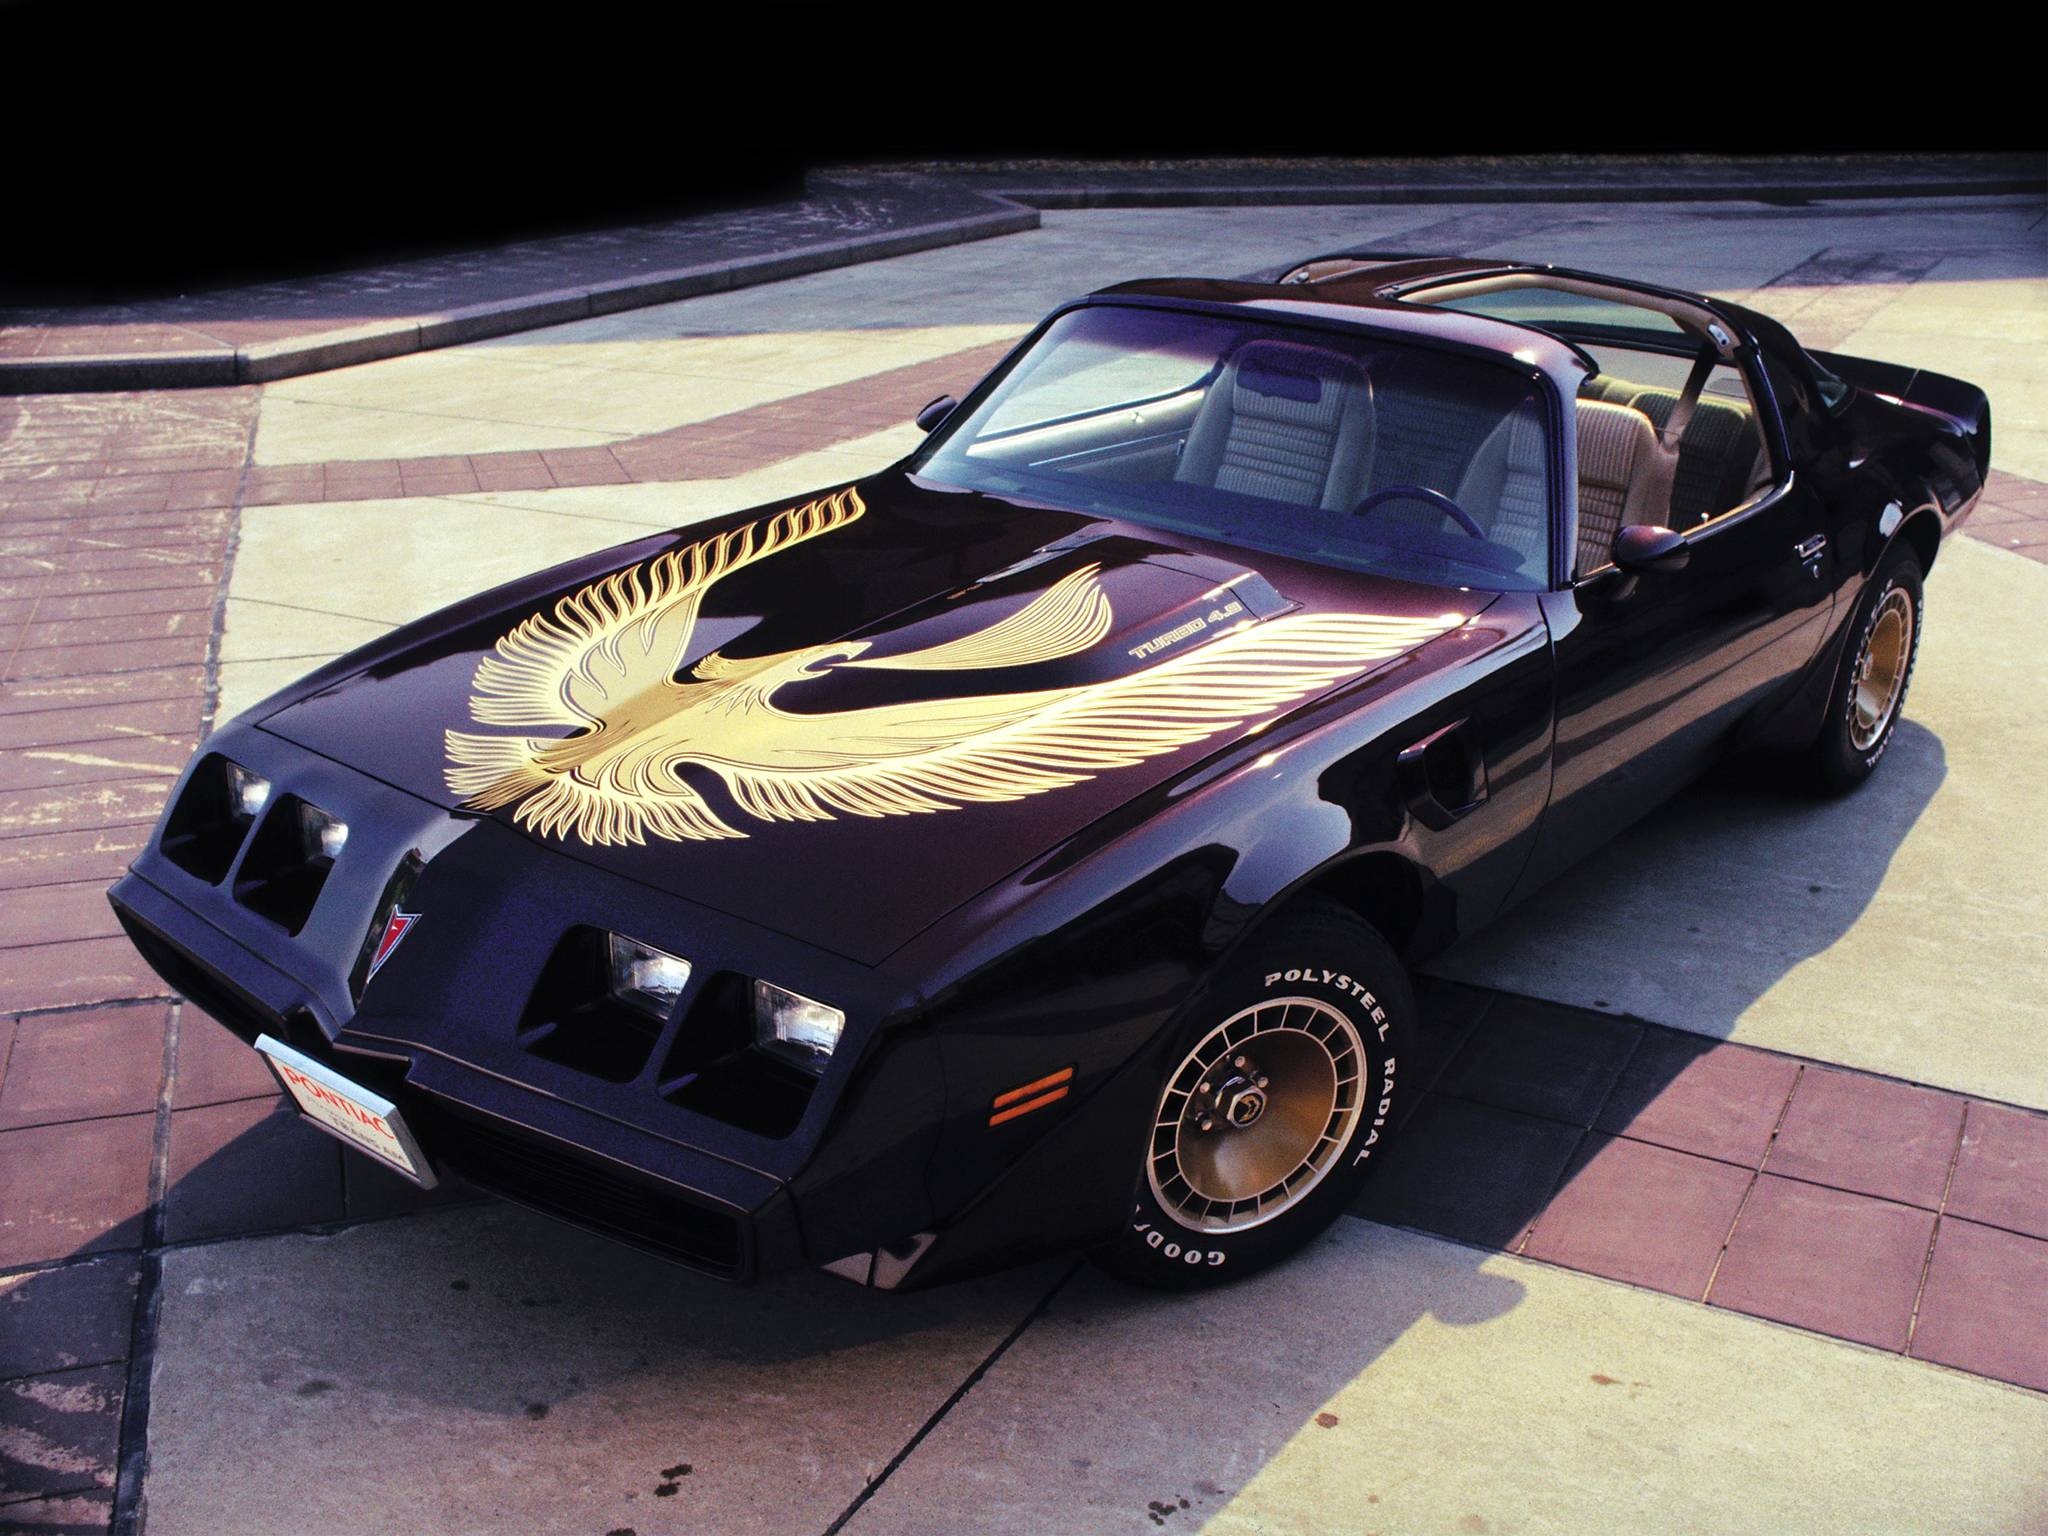 Used Trans Am Race Cars For Sale